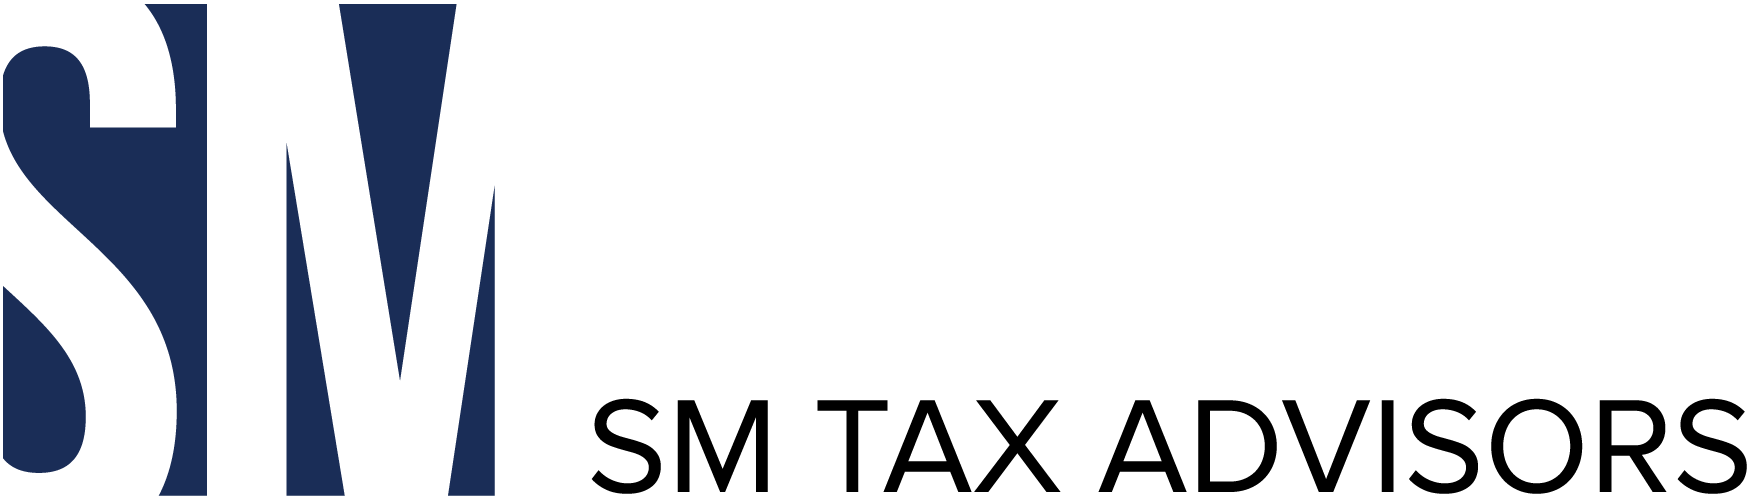 SM Tax Advisors